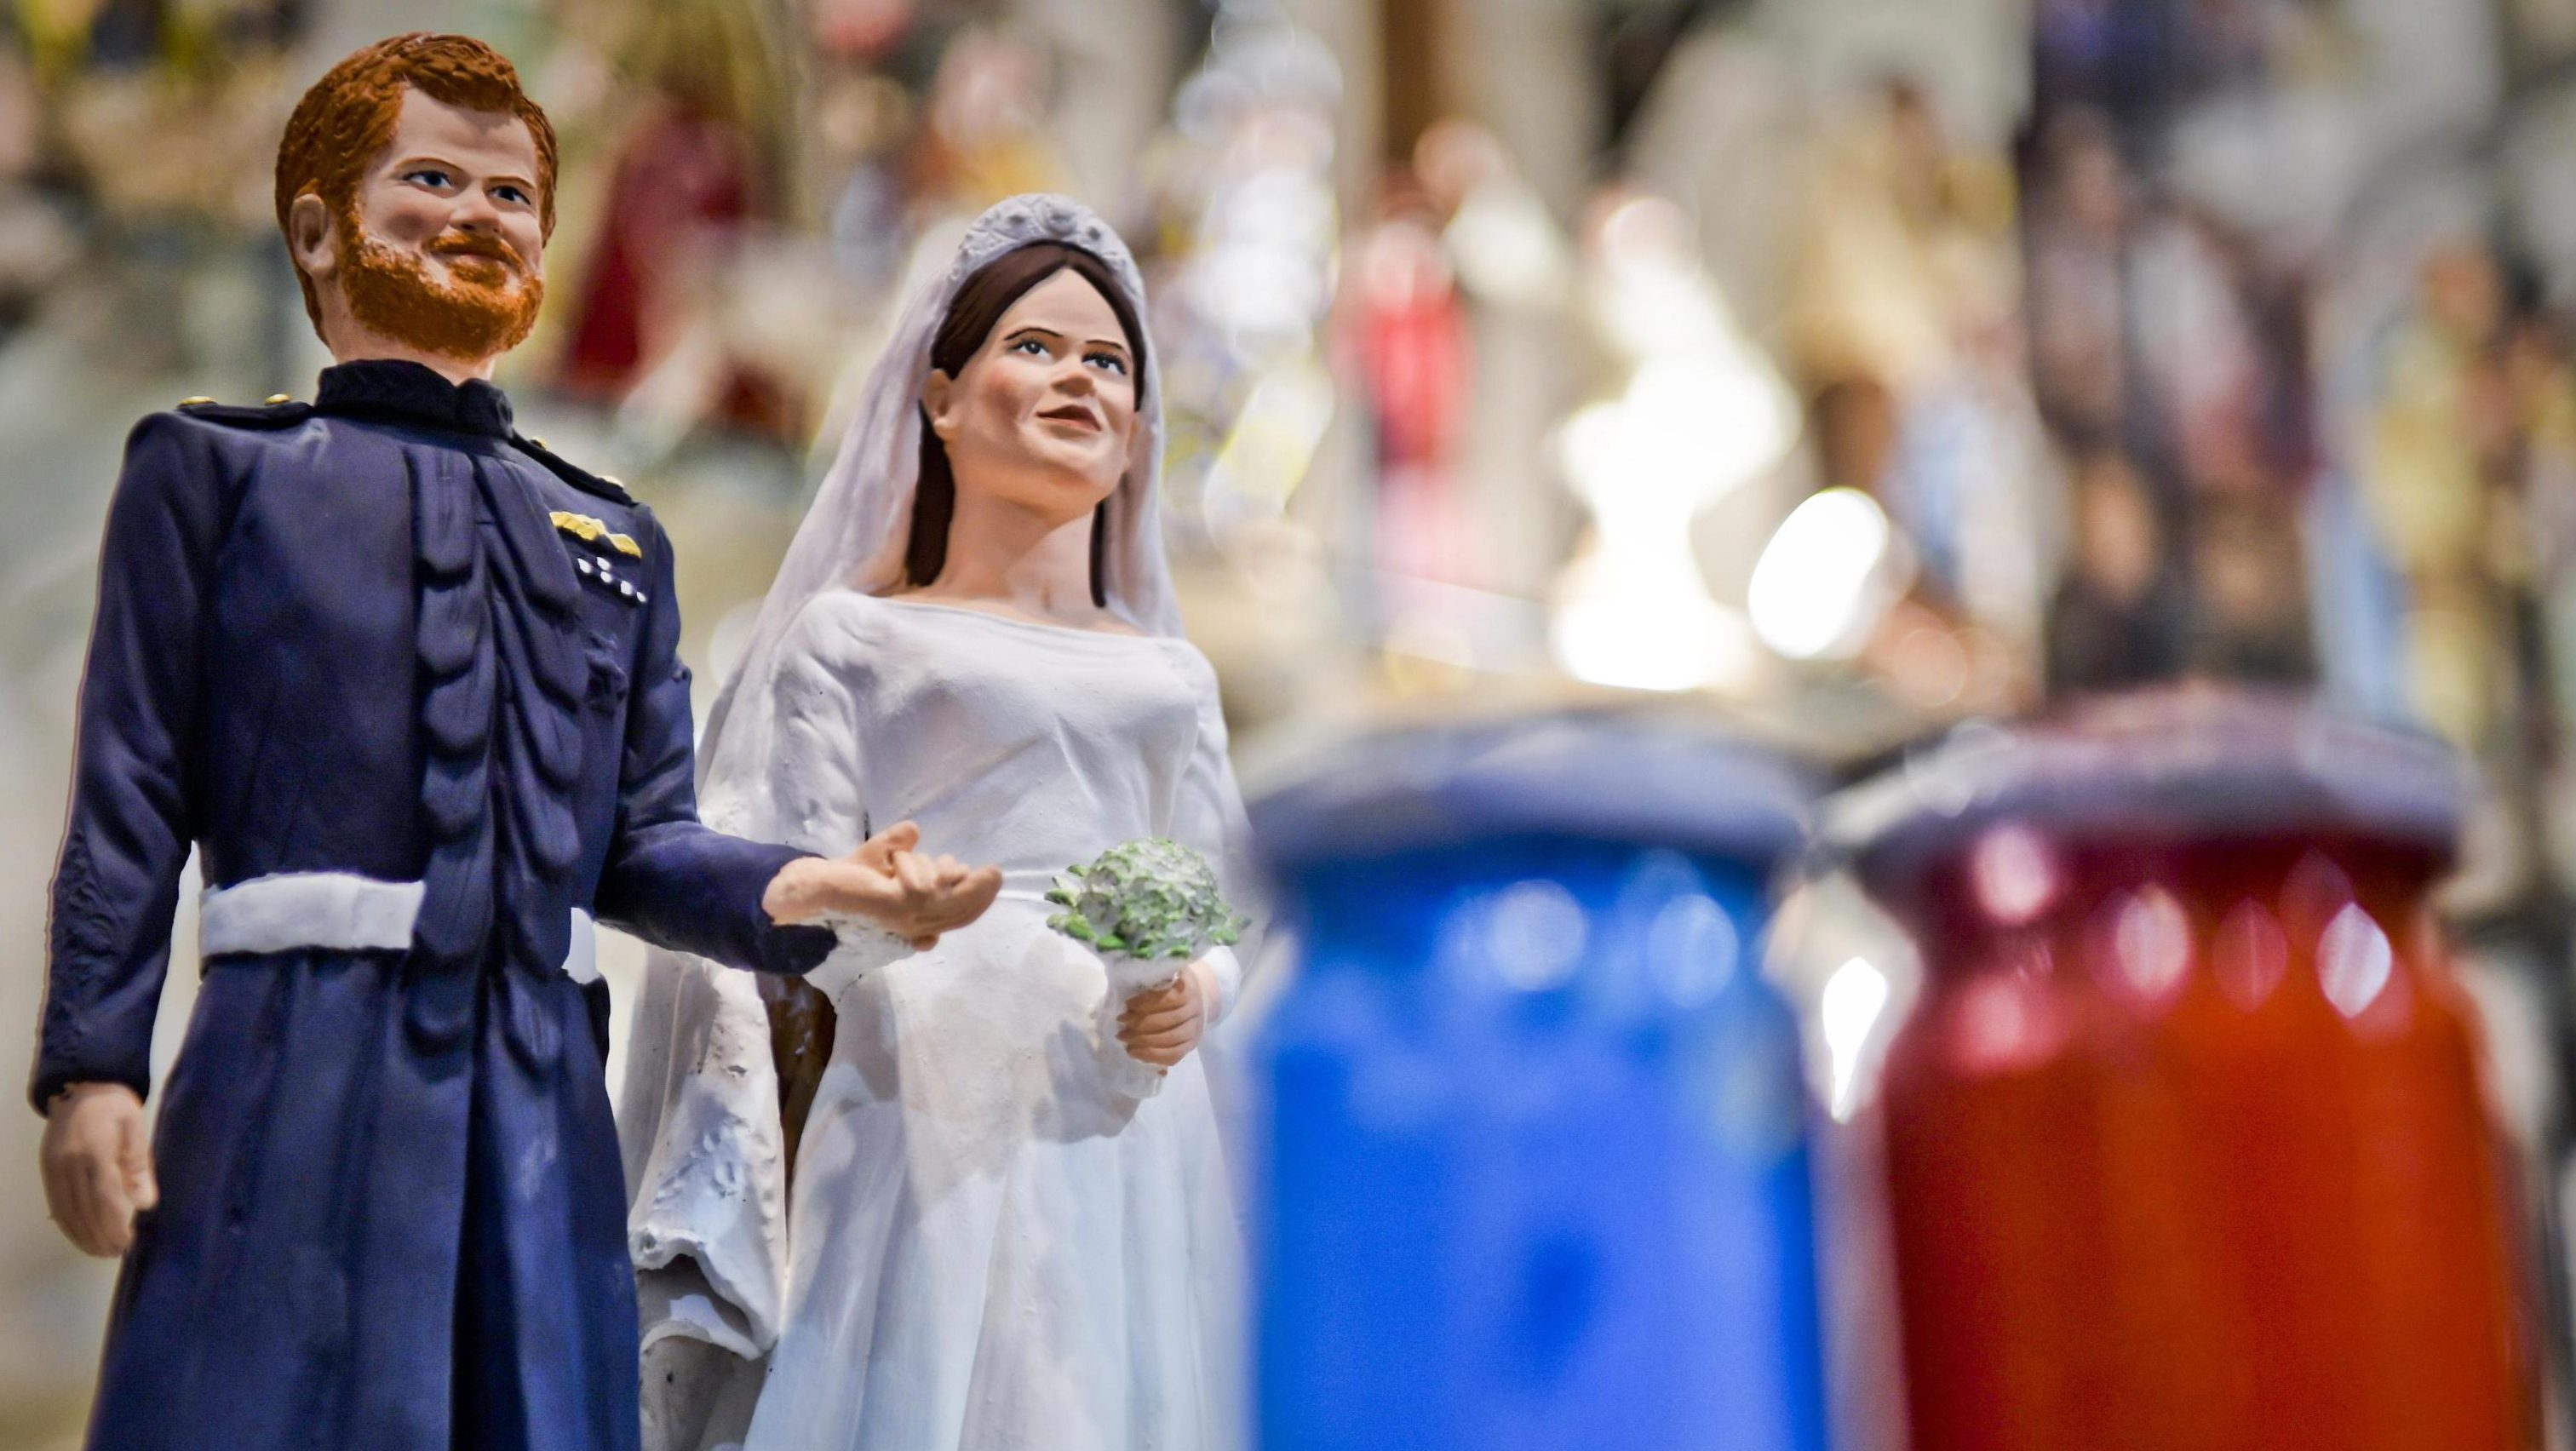 The figurines of Britain's Prince Harry and Meghan Markle